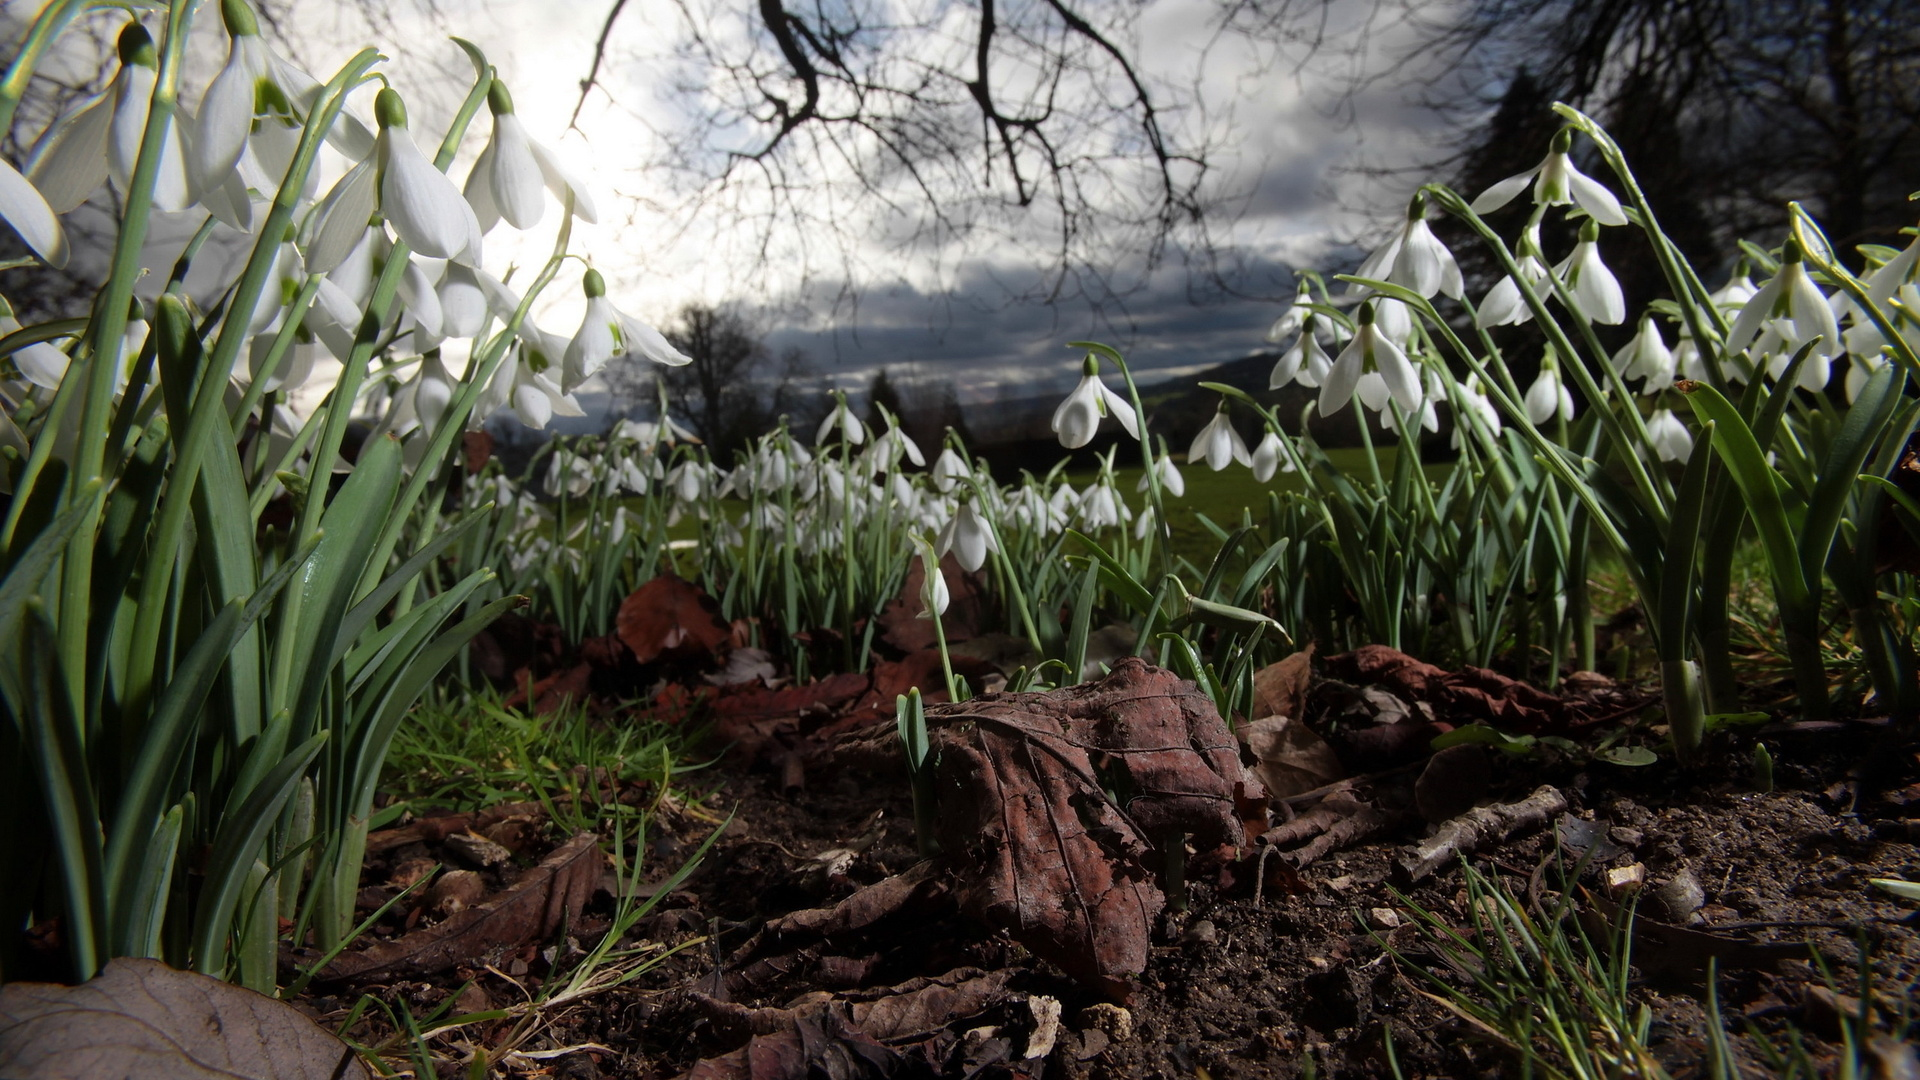 Spring, Snowdrops, Flowers, Nature Wallpaper 1920x1080 px